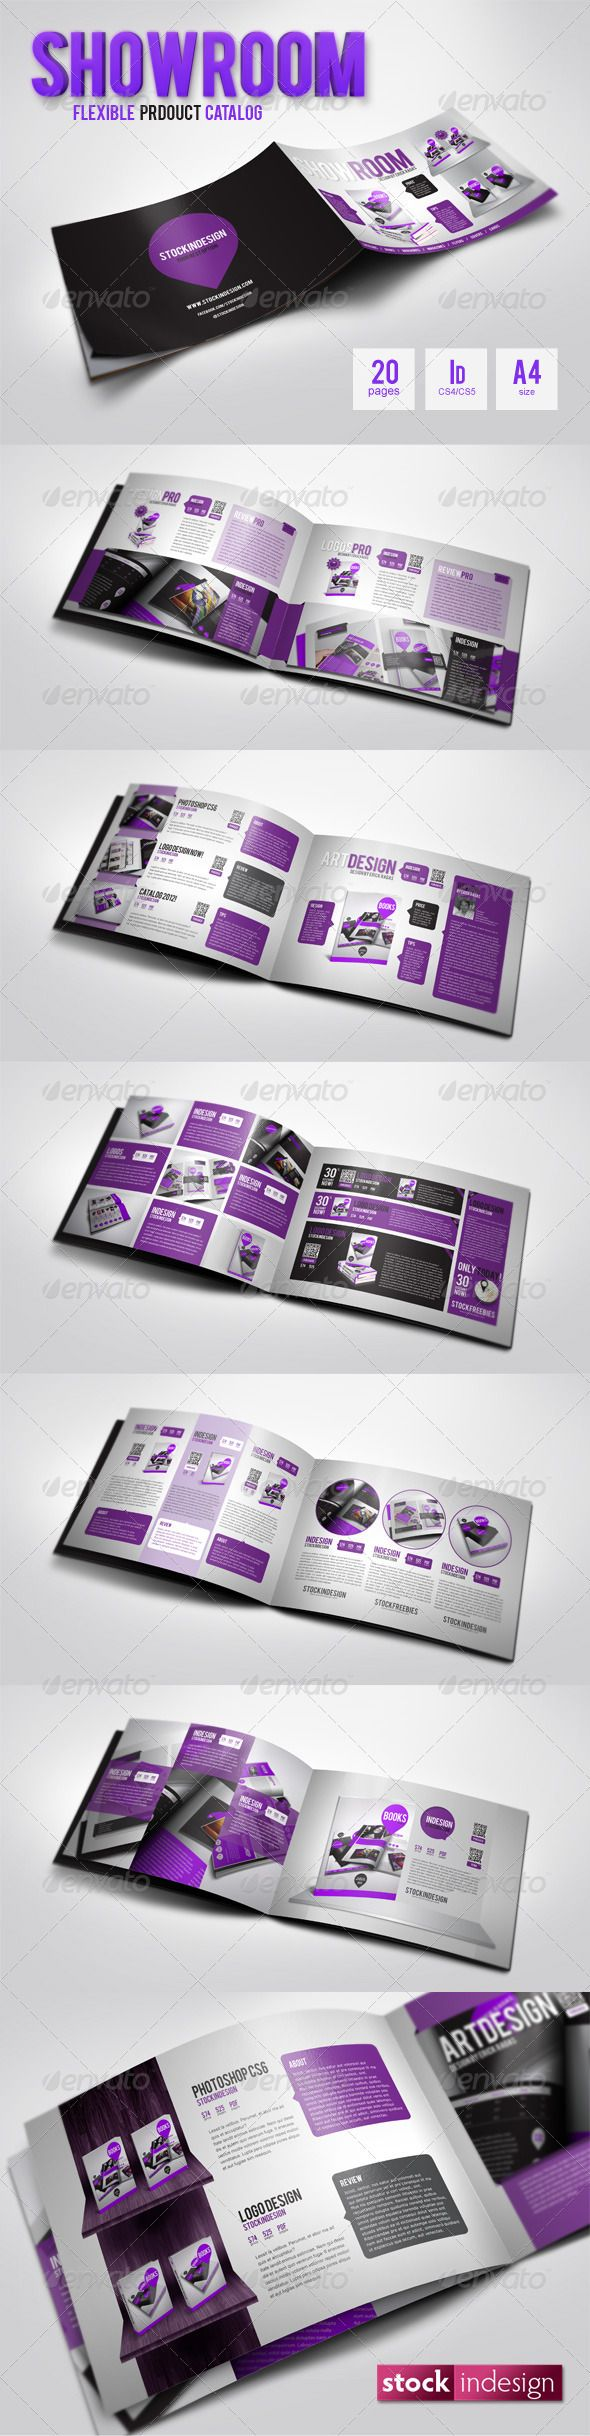 Wonderful 10 Best Resume Designs Tiny 100 Free Resume Builder And Download Solid 100 Template 18th Birthday Invitations Templates Old 2 Binder Spine Template Fresh2 Weeks Notice Template 25 Best Images About Product Catalog On Pinterest | Creative ..